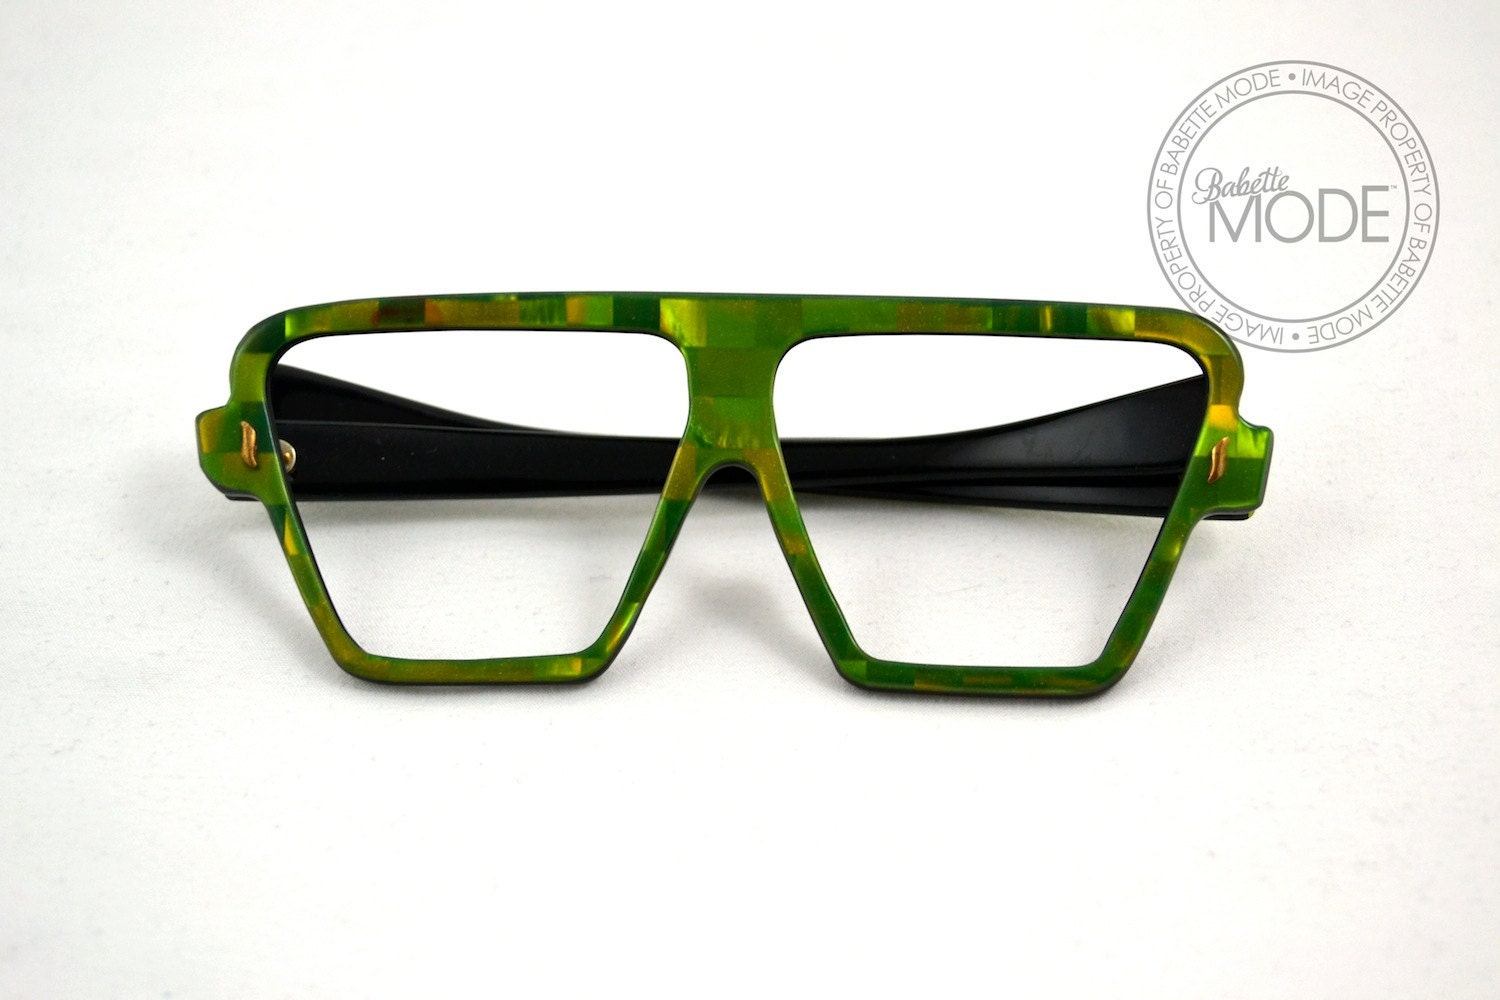 Eyeglass Frames Green : Vintage Green Eyeglass Frames Abstract Kitsch